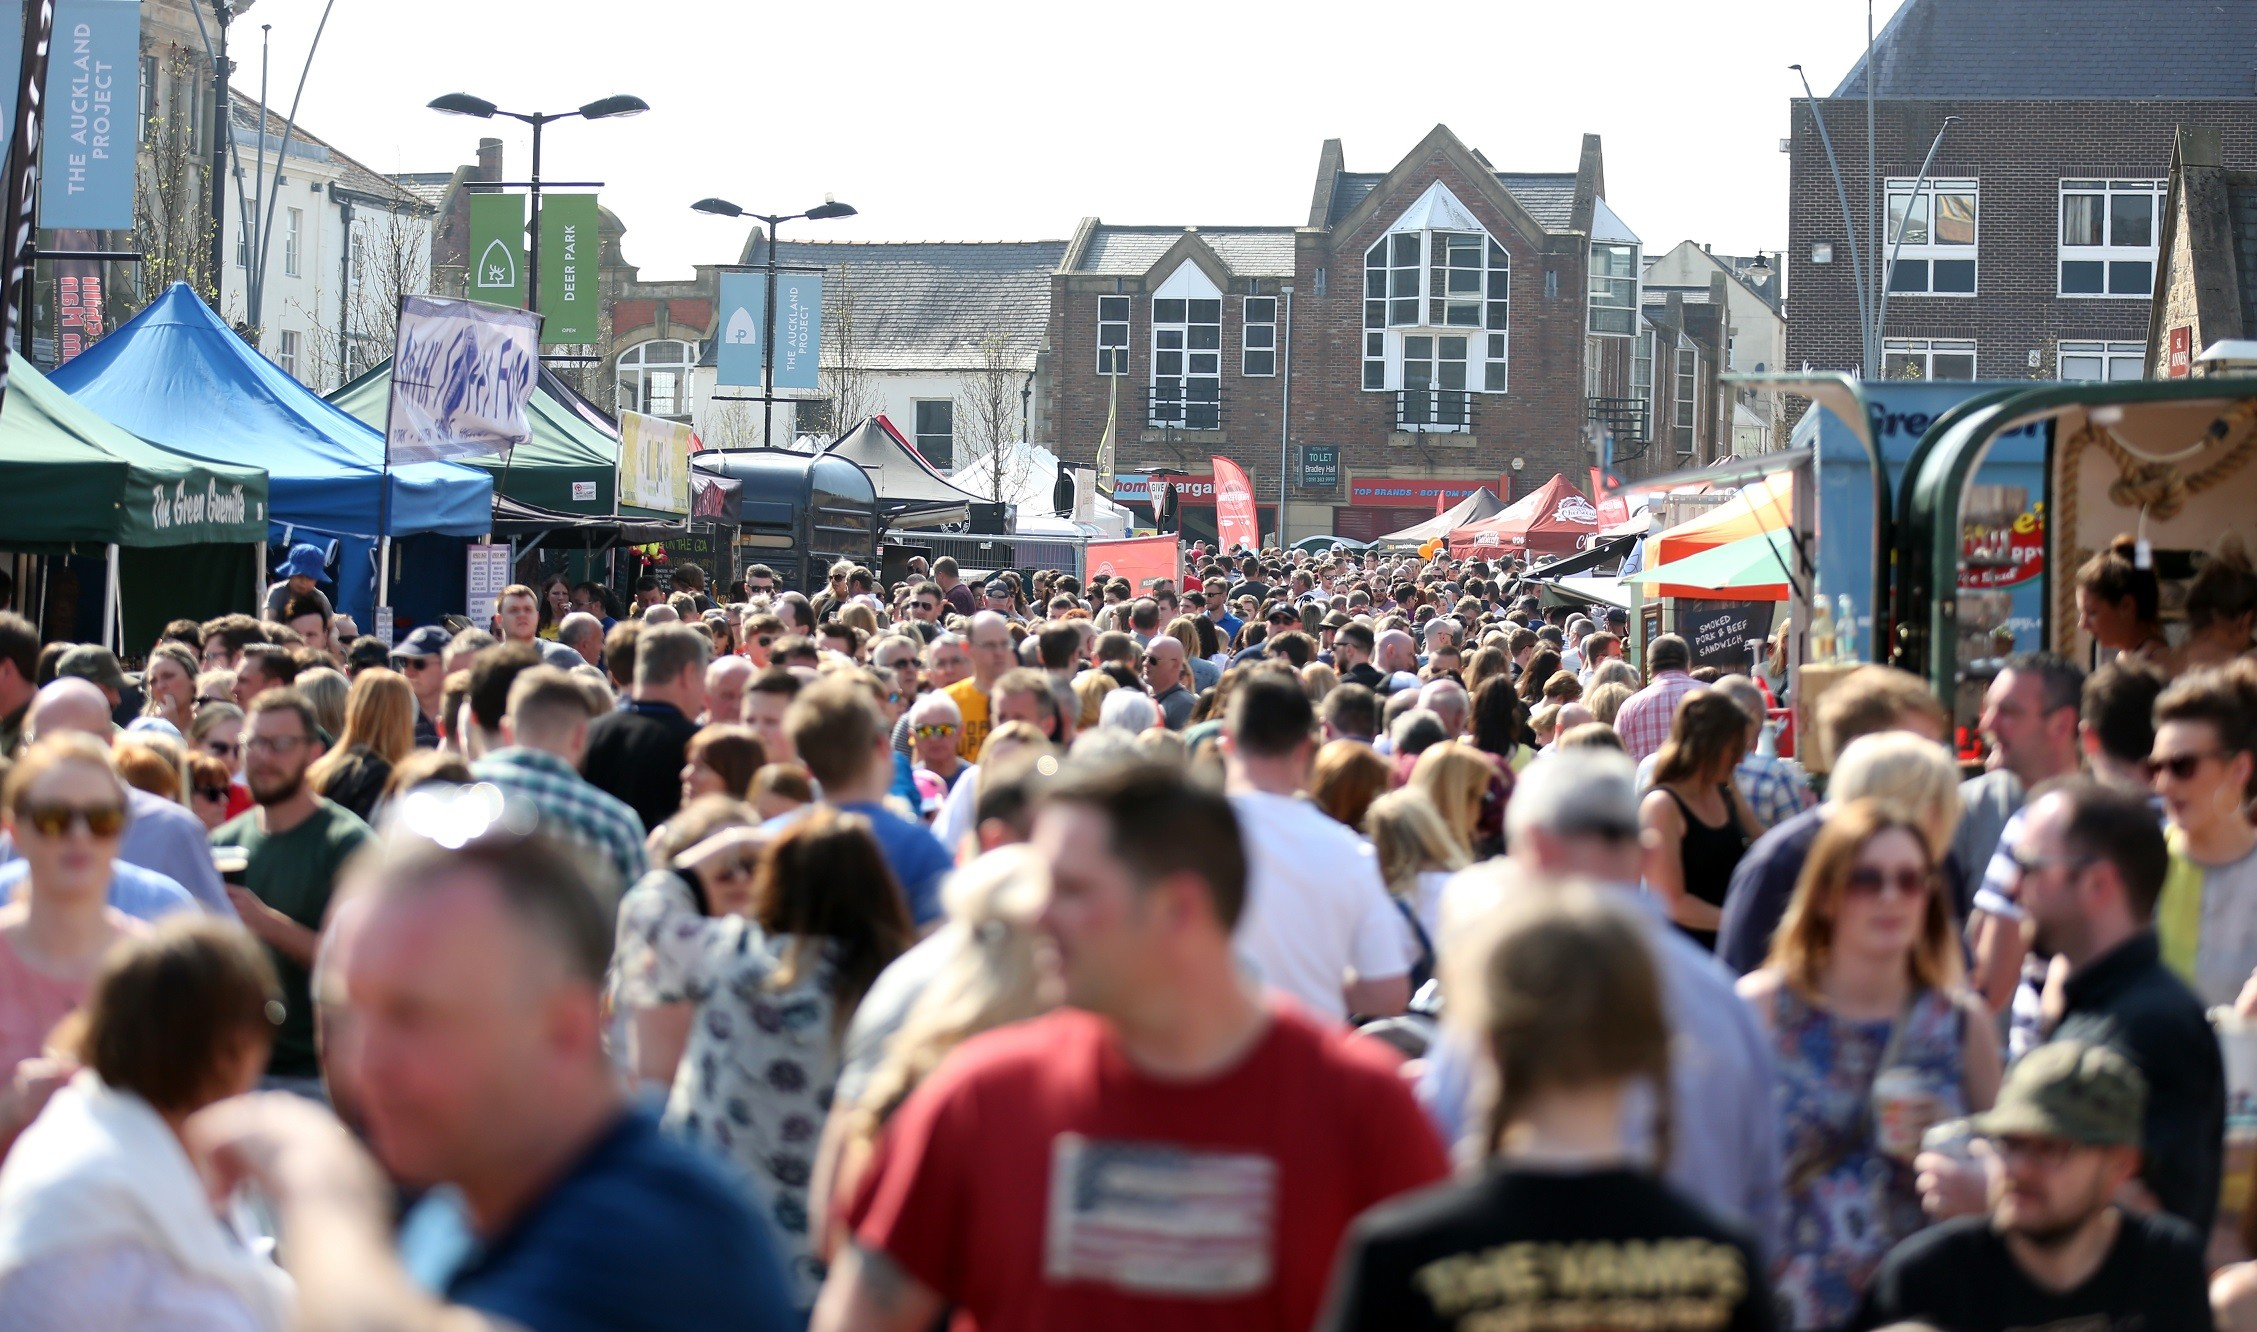 Plan Your Travel Ahead of Popular Food Festival